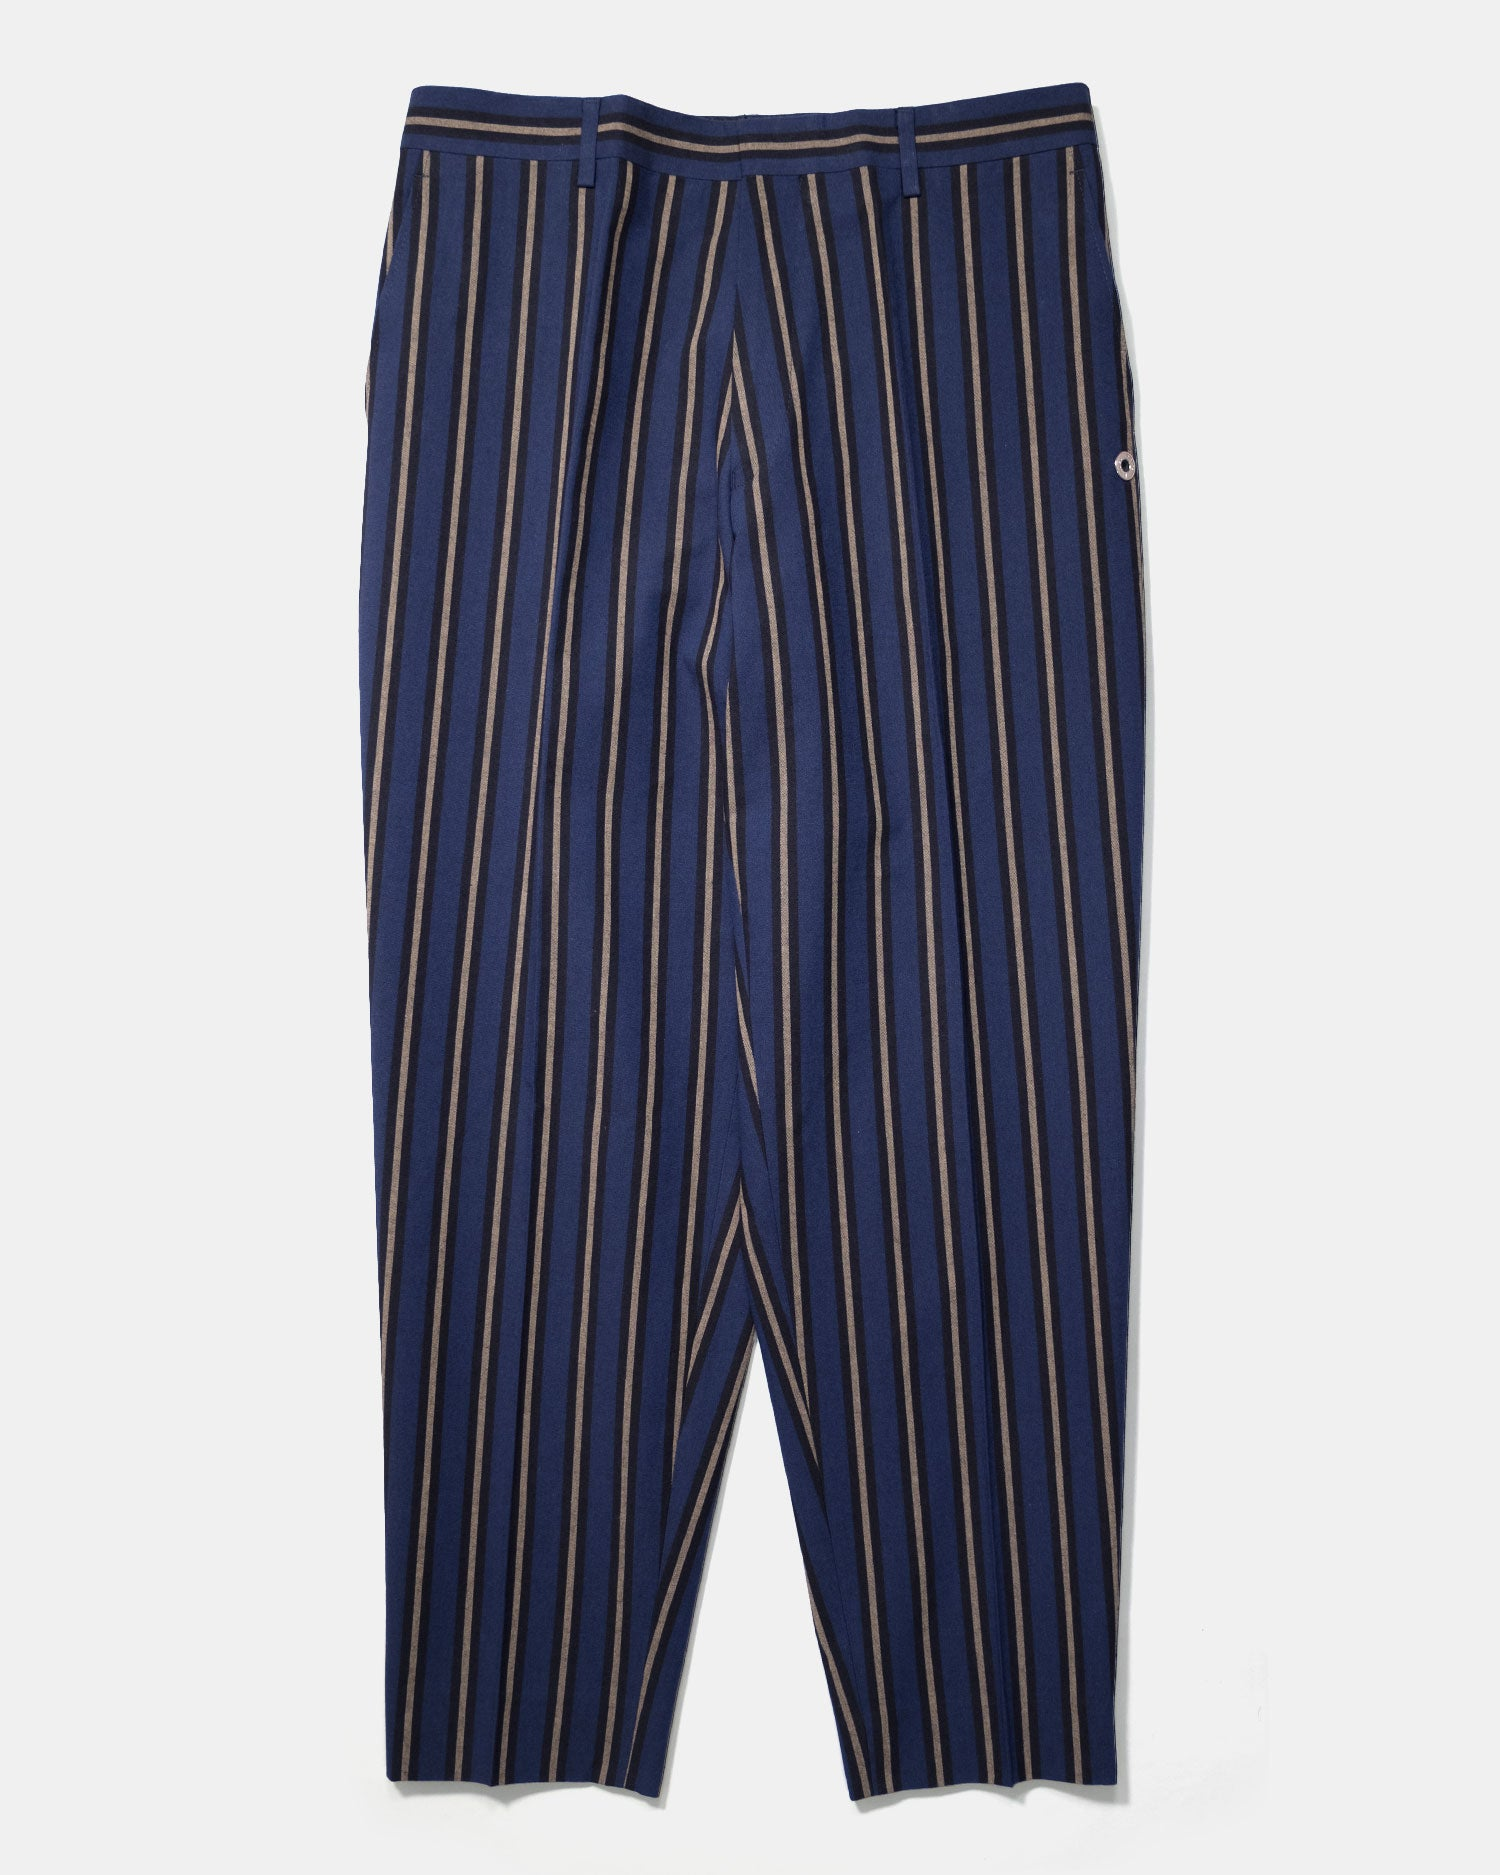 Études Revolte Trousers Navy Stripe